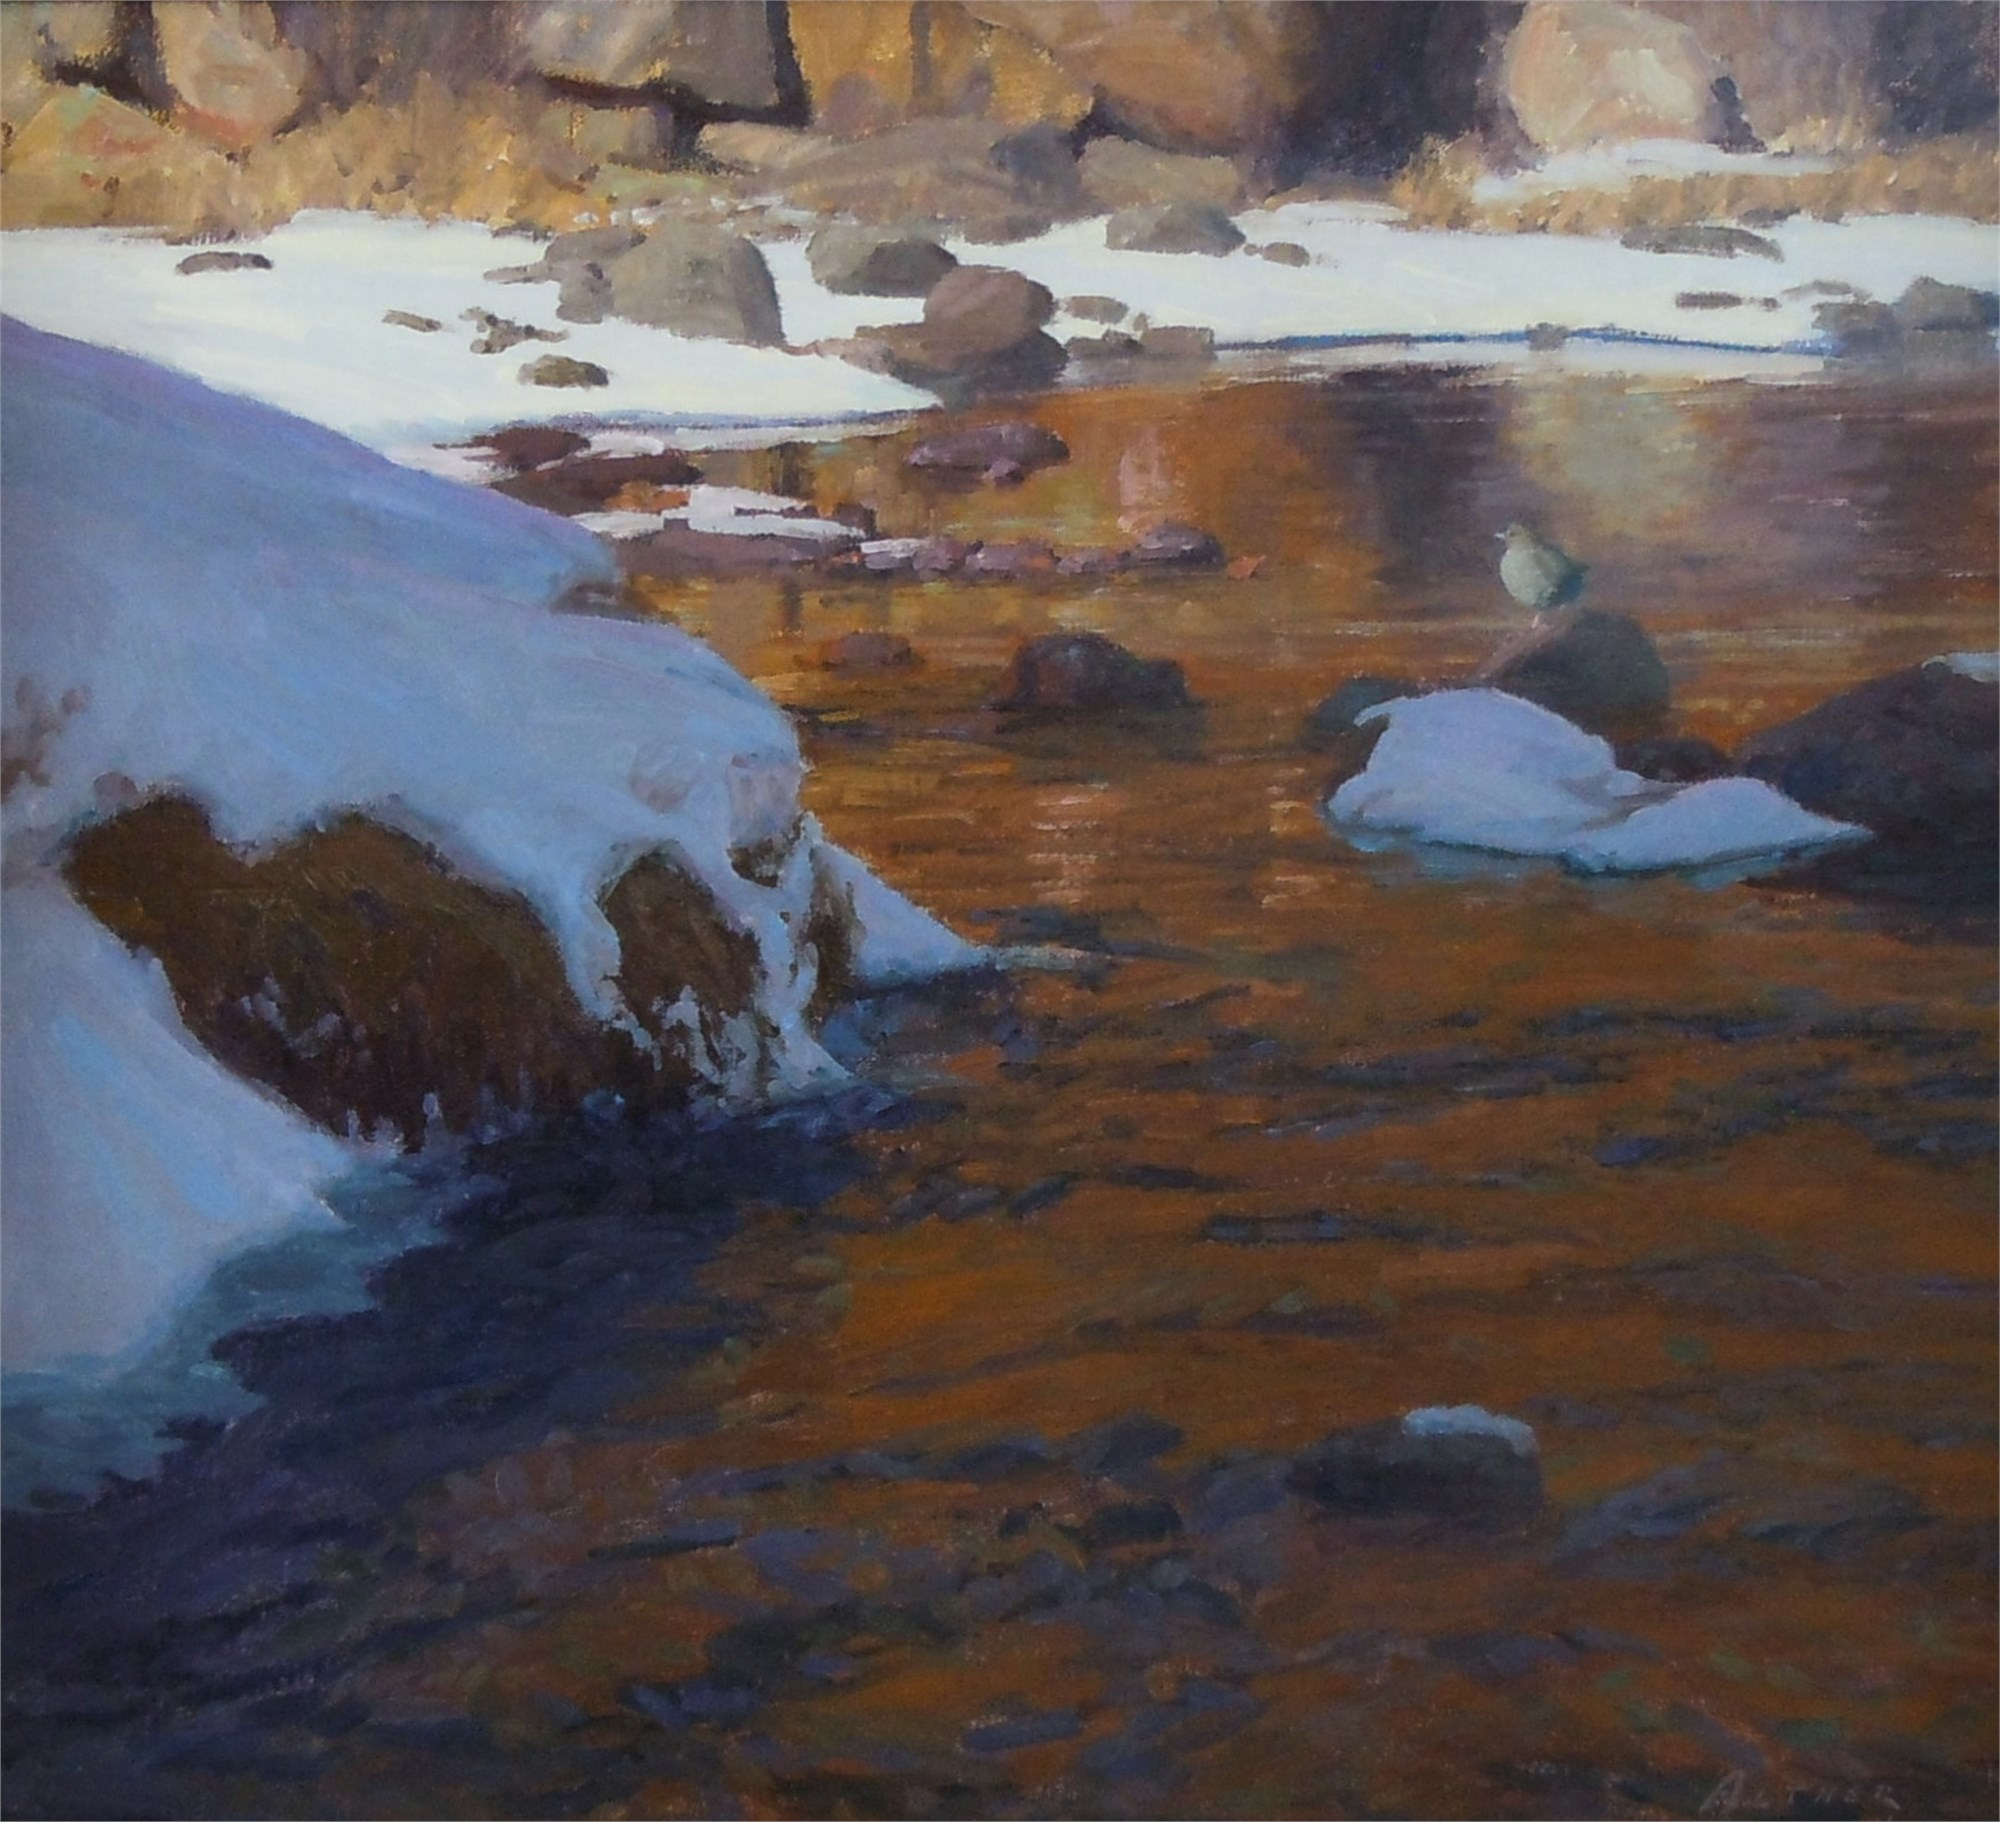 Rocks and Water by William Alther